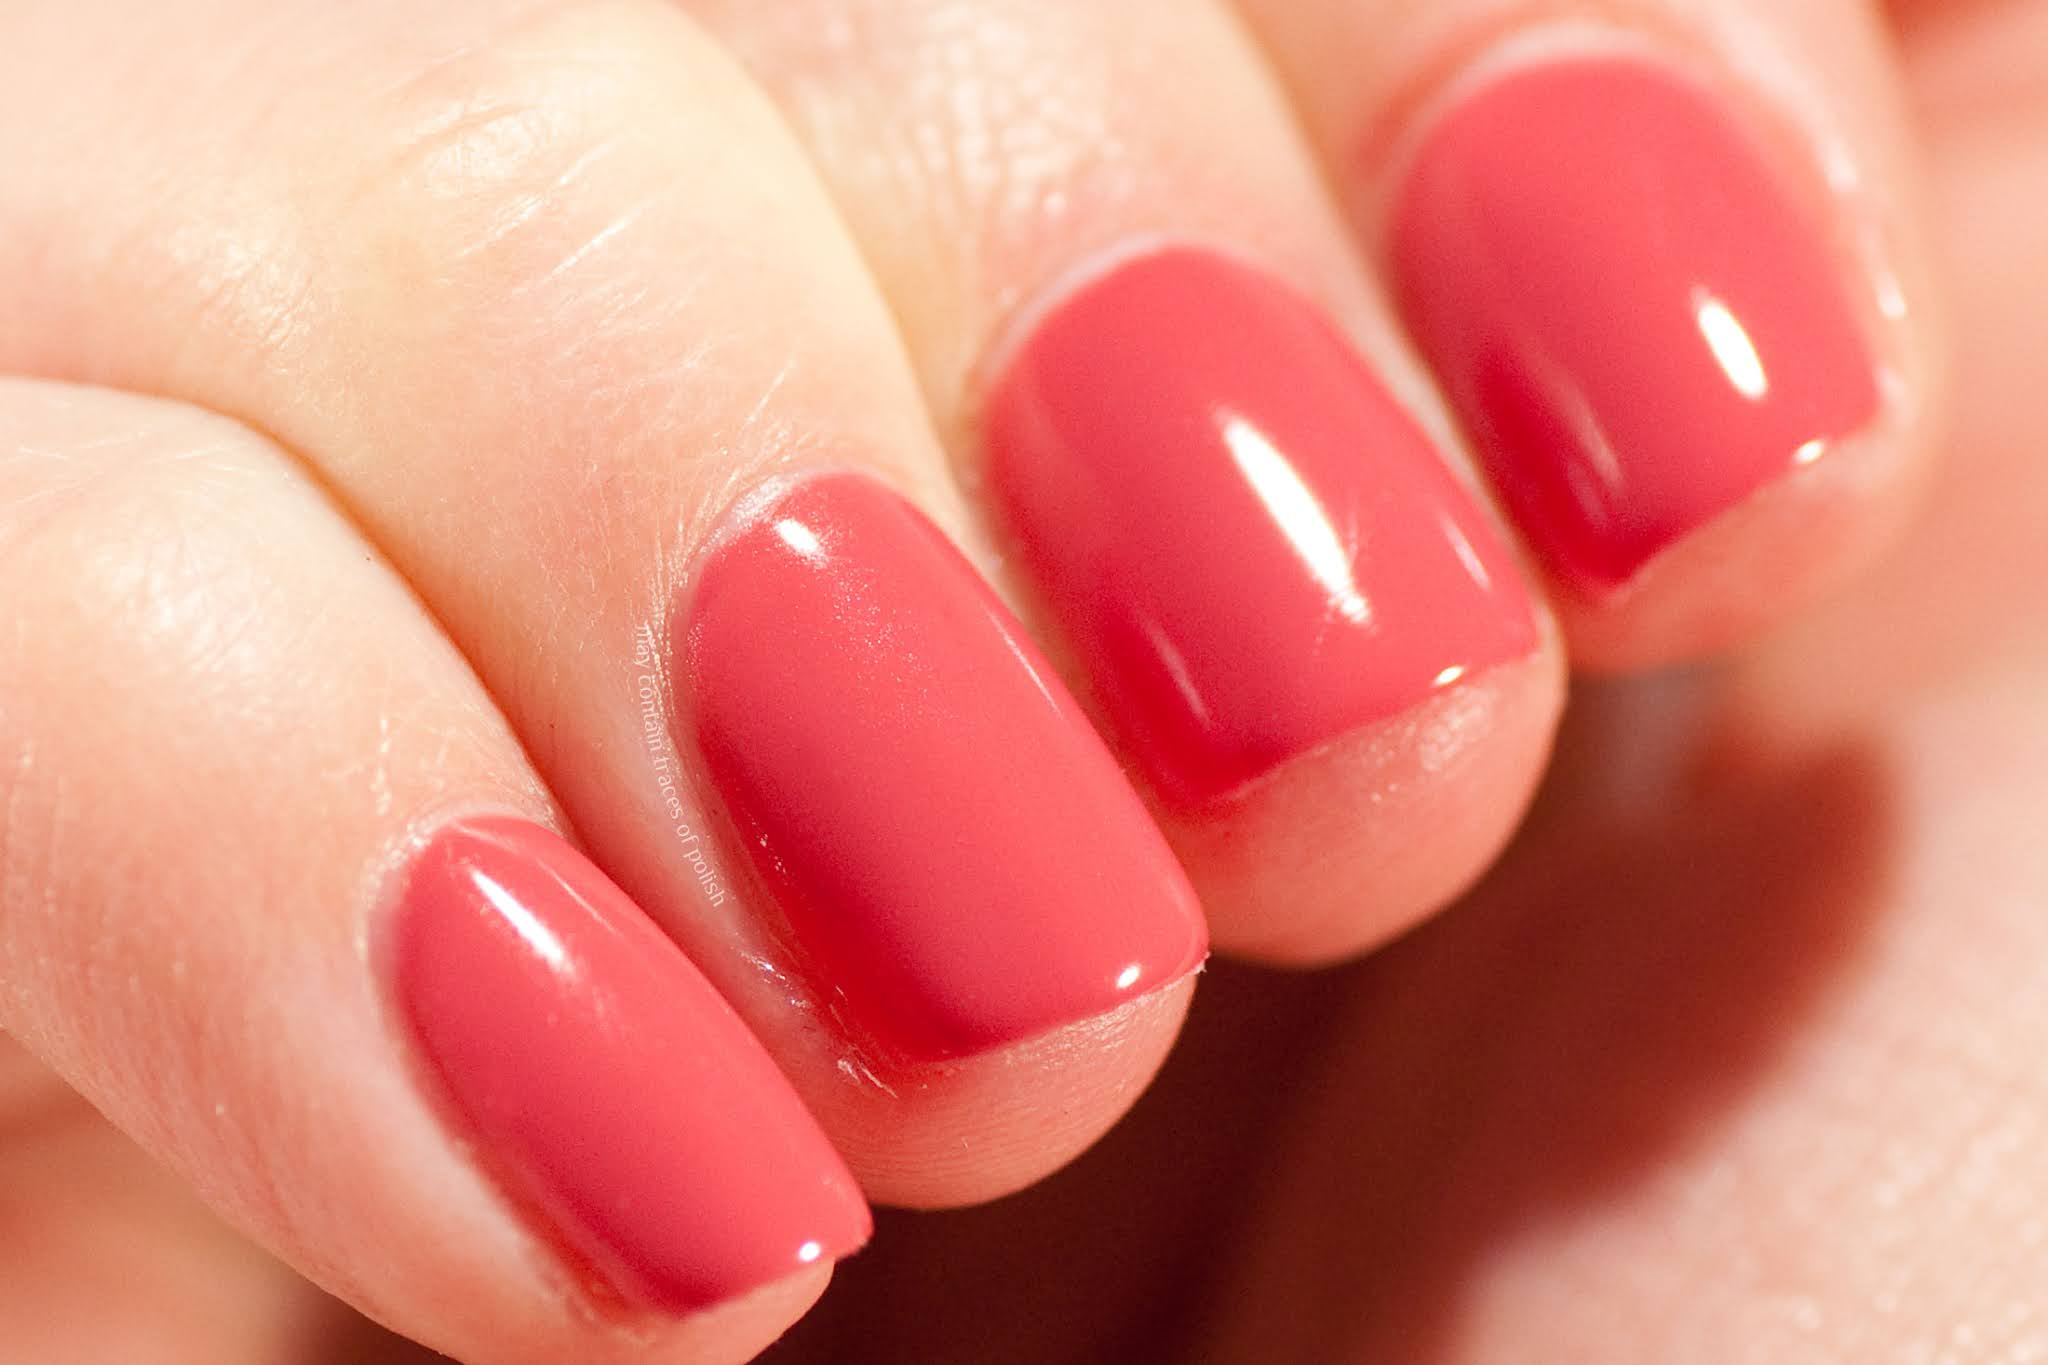 Pink Gellac swatches - 142 Coral Red